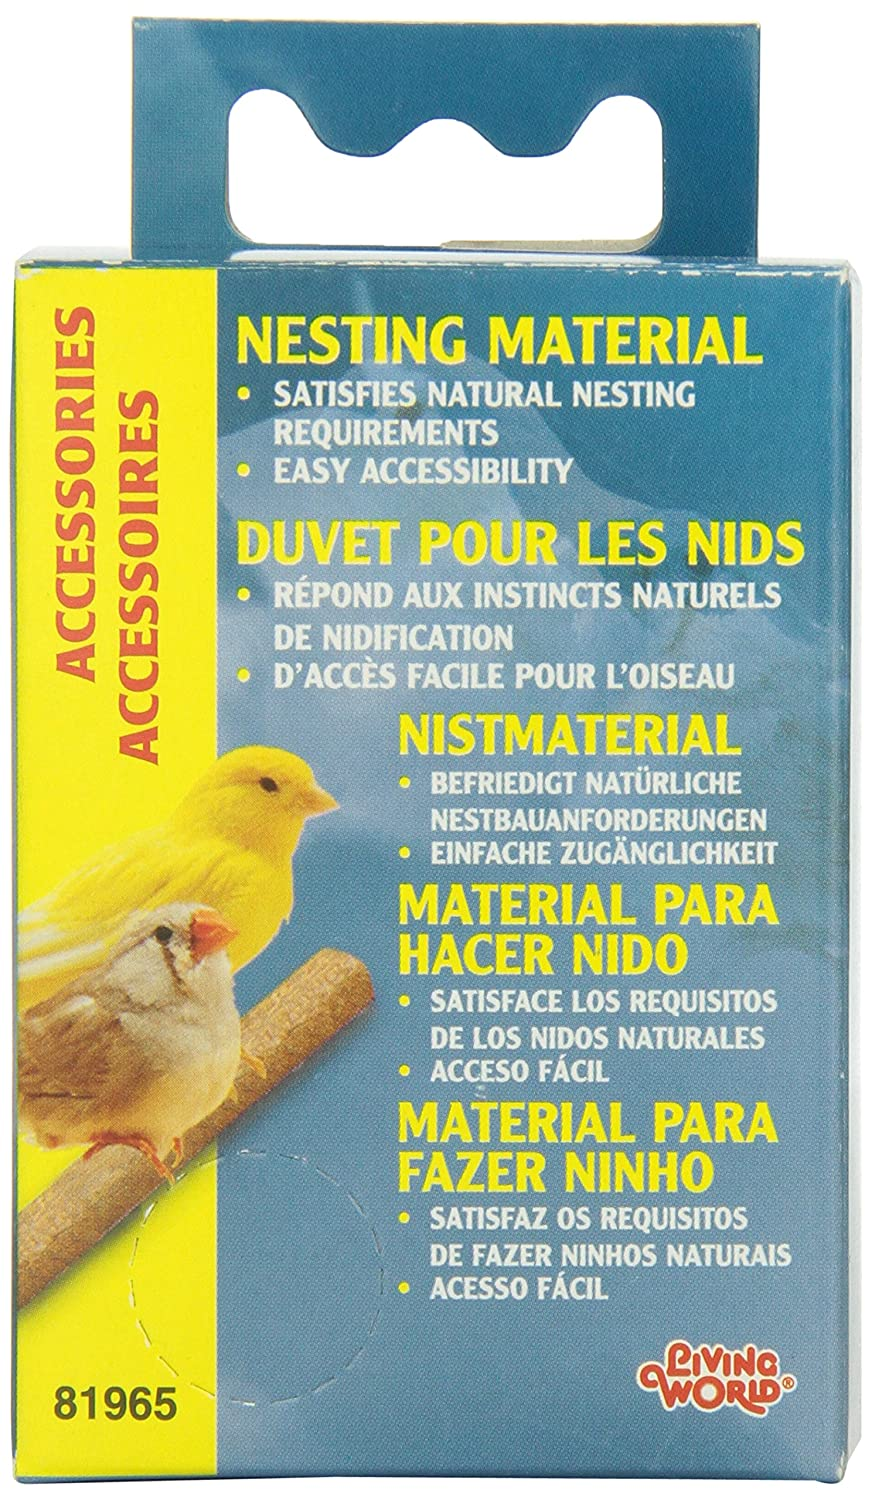 Living World Nesting Material 81965